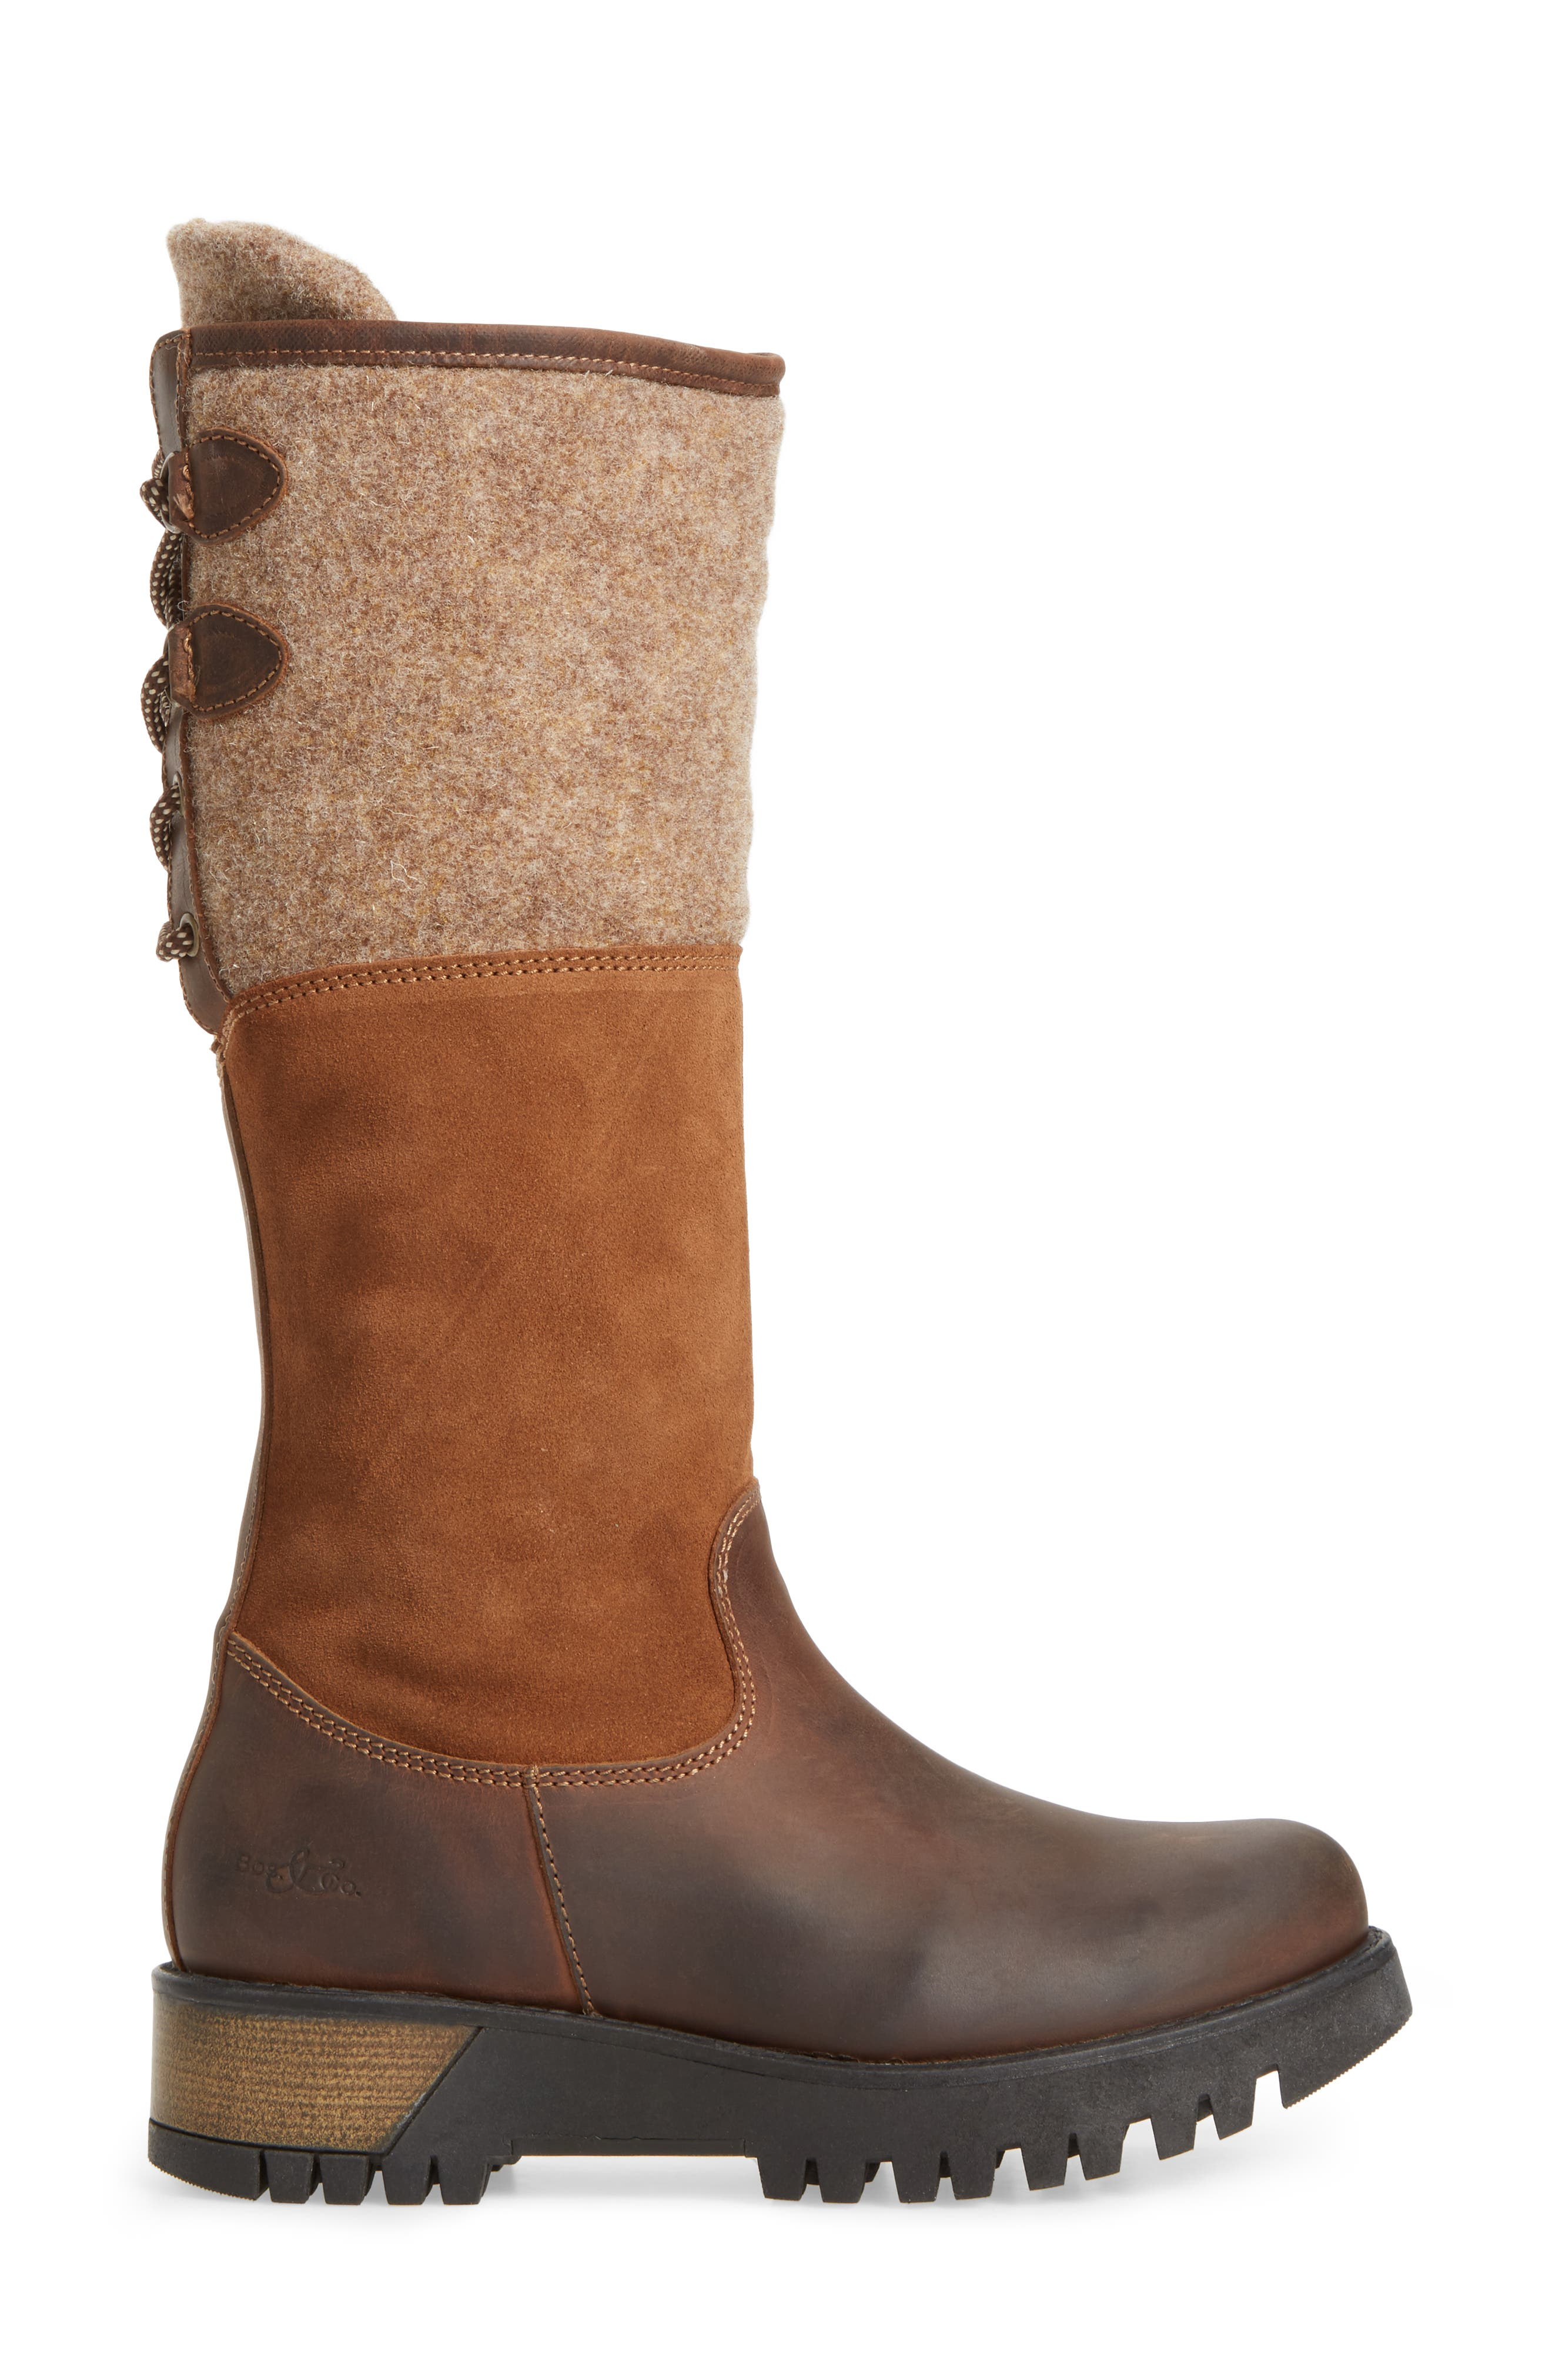 'Ginger' Waterproof Mid Calf Platform Boot,                             Alternate thumbnail 3, color,                             Expresso/ Beige